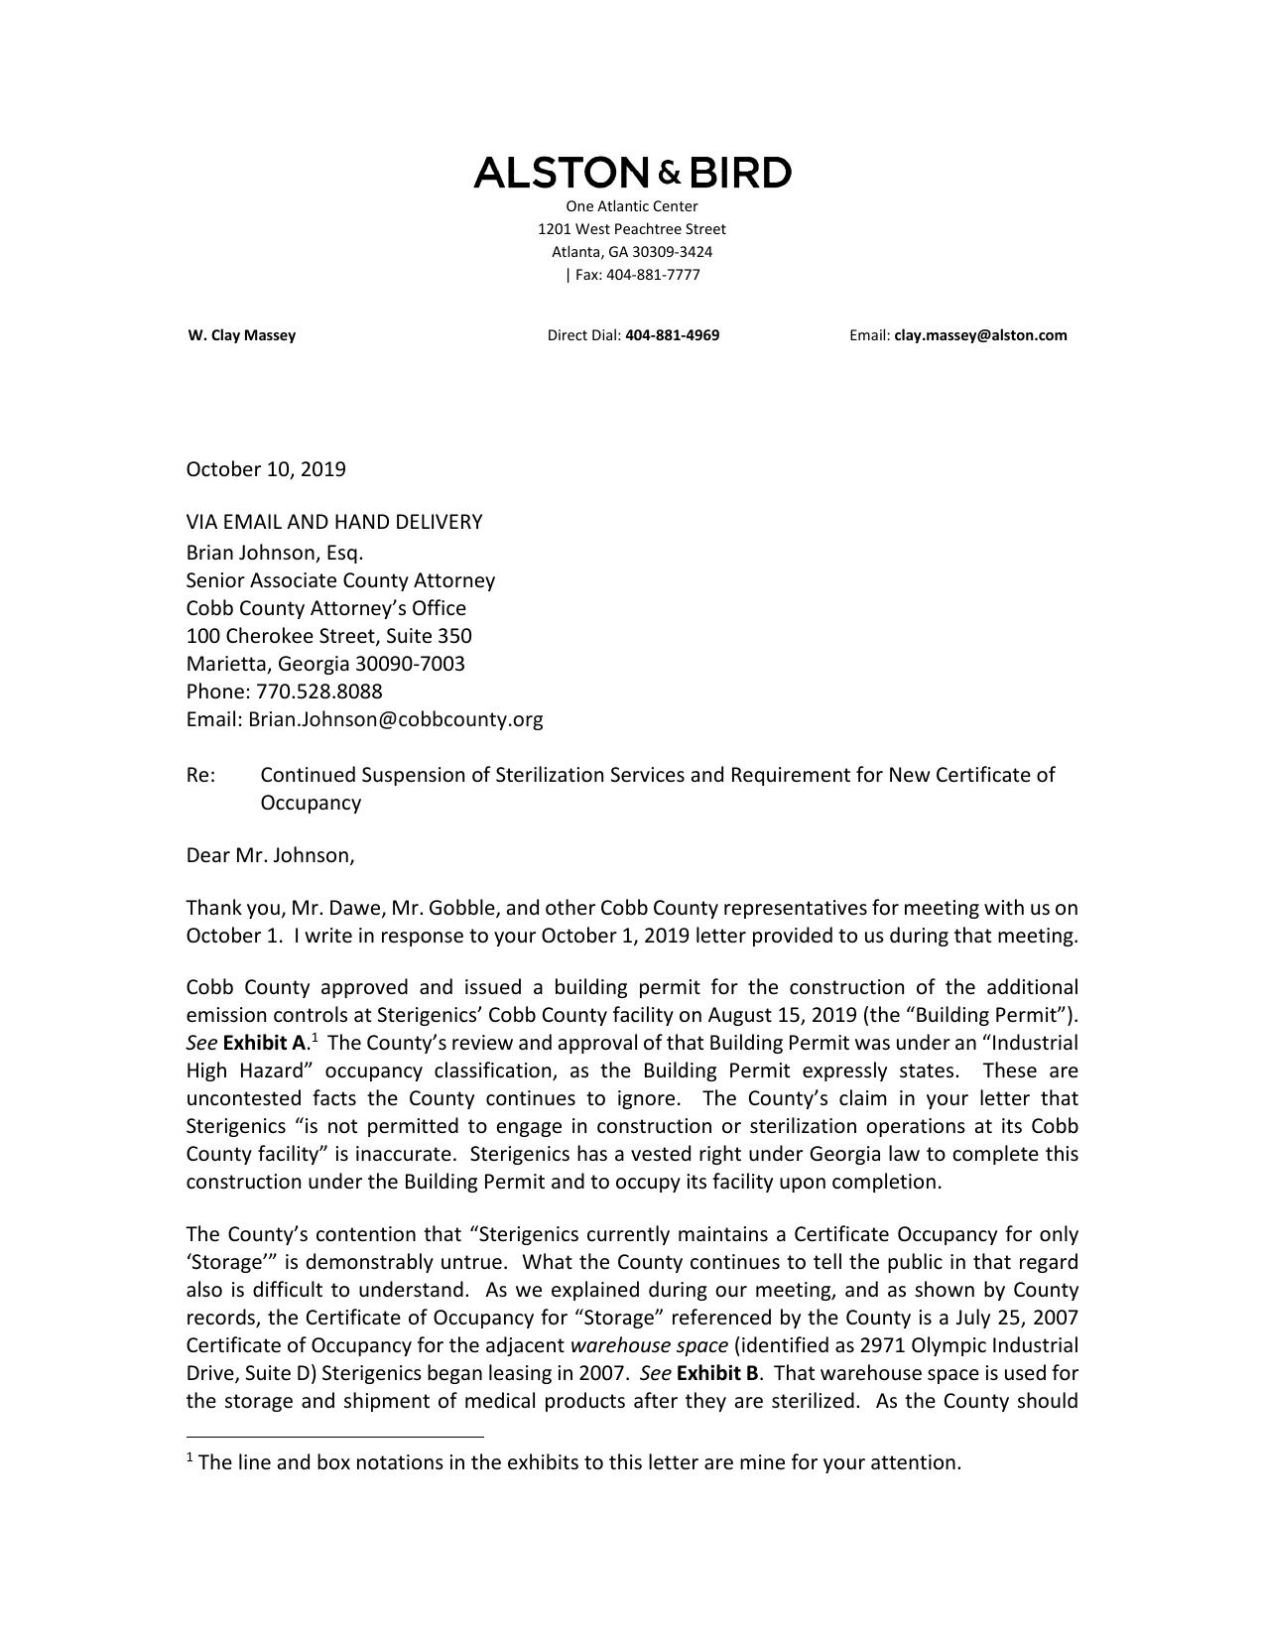 Sterigenics Oct. 10 letter to Cobb County